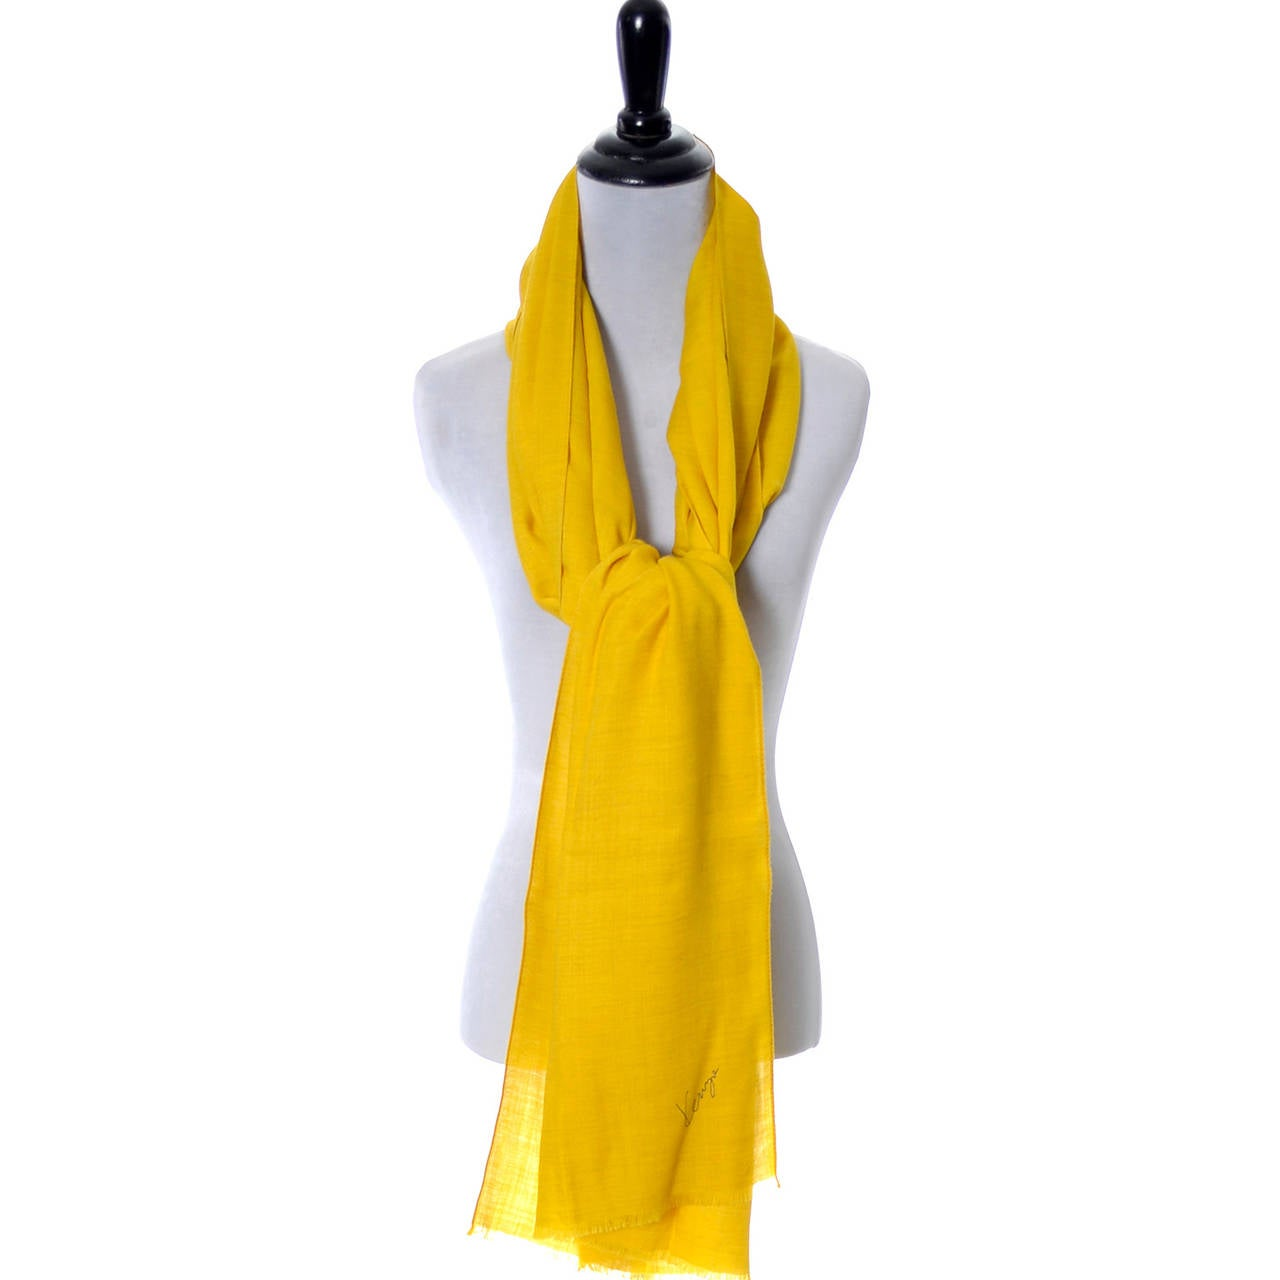 This is a gorgeous mustard yellow vintage scarf from Kenzo Paris with the Kenzo signature logo on the front. This beautiful scarf  is in an ultra fine lightweight wool and can be worn as a shawl - it measures 27 by 80 inches so it's the perfect